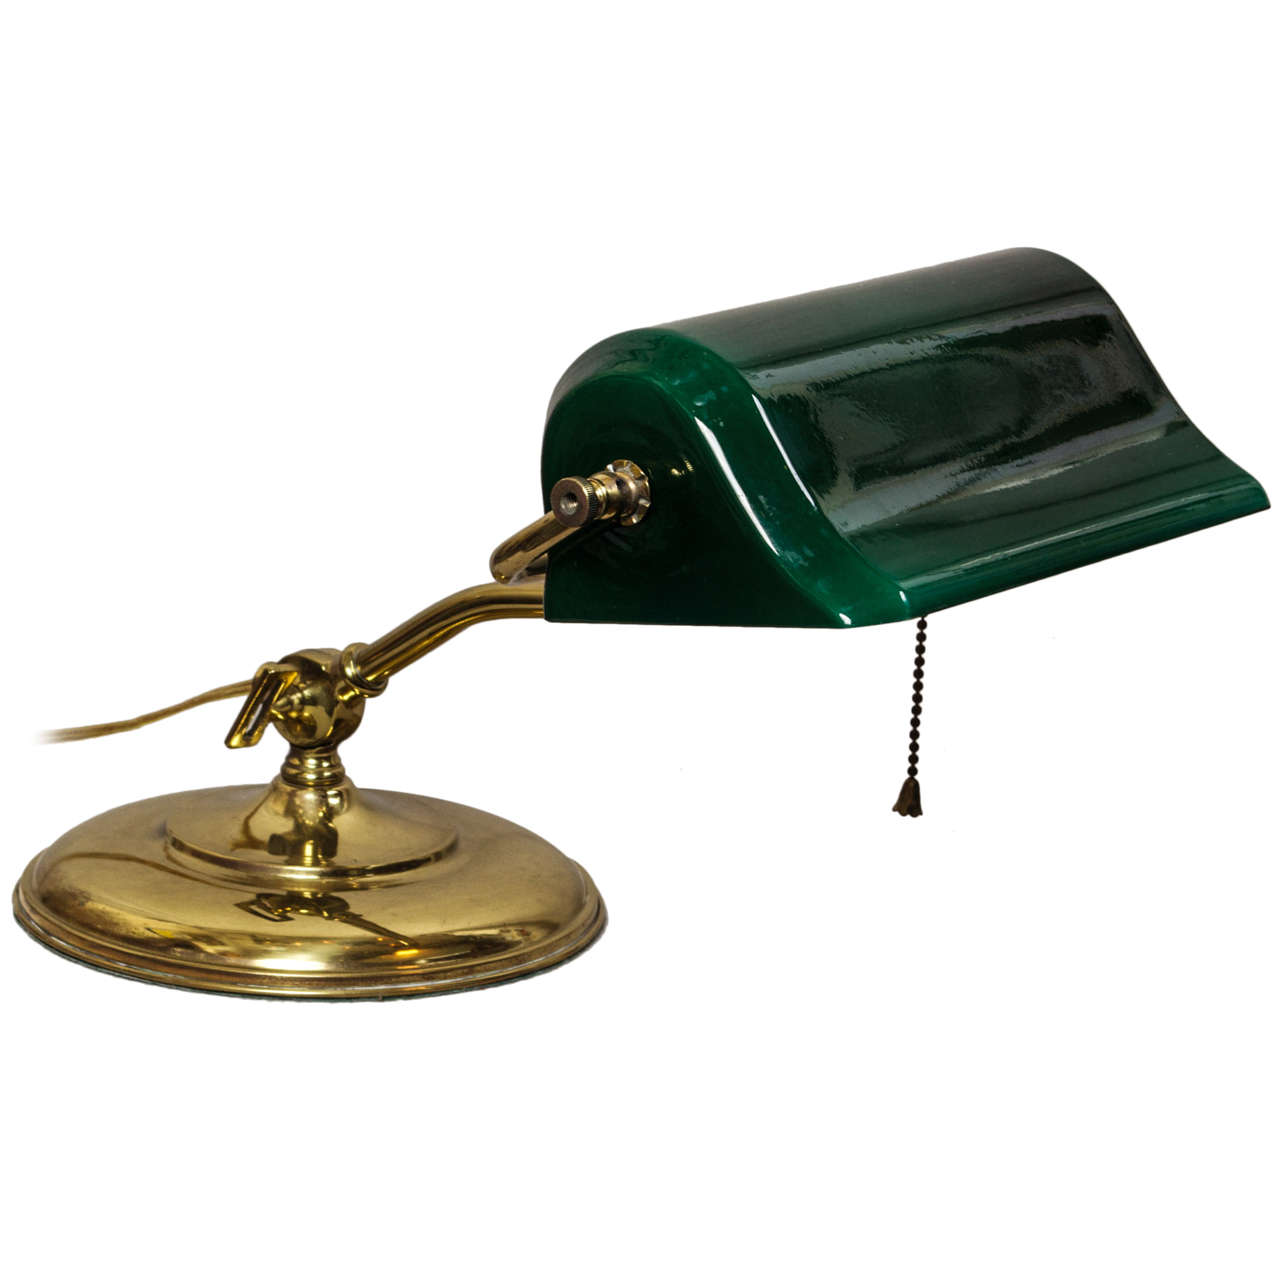 Watch more like Green Bankers Desk Lamp – Desk Lamp Green Shade